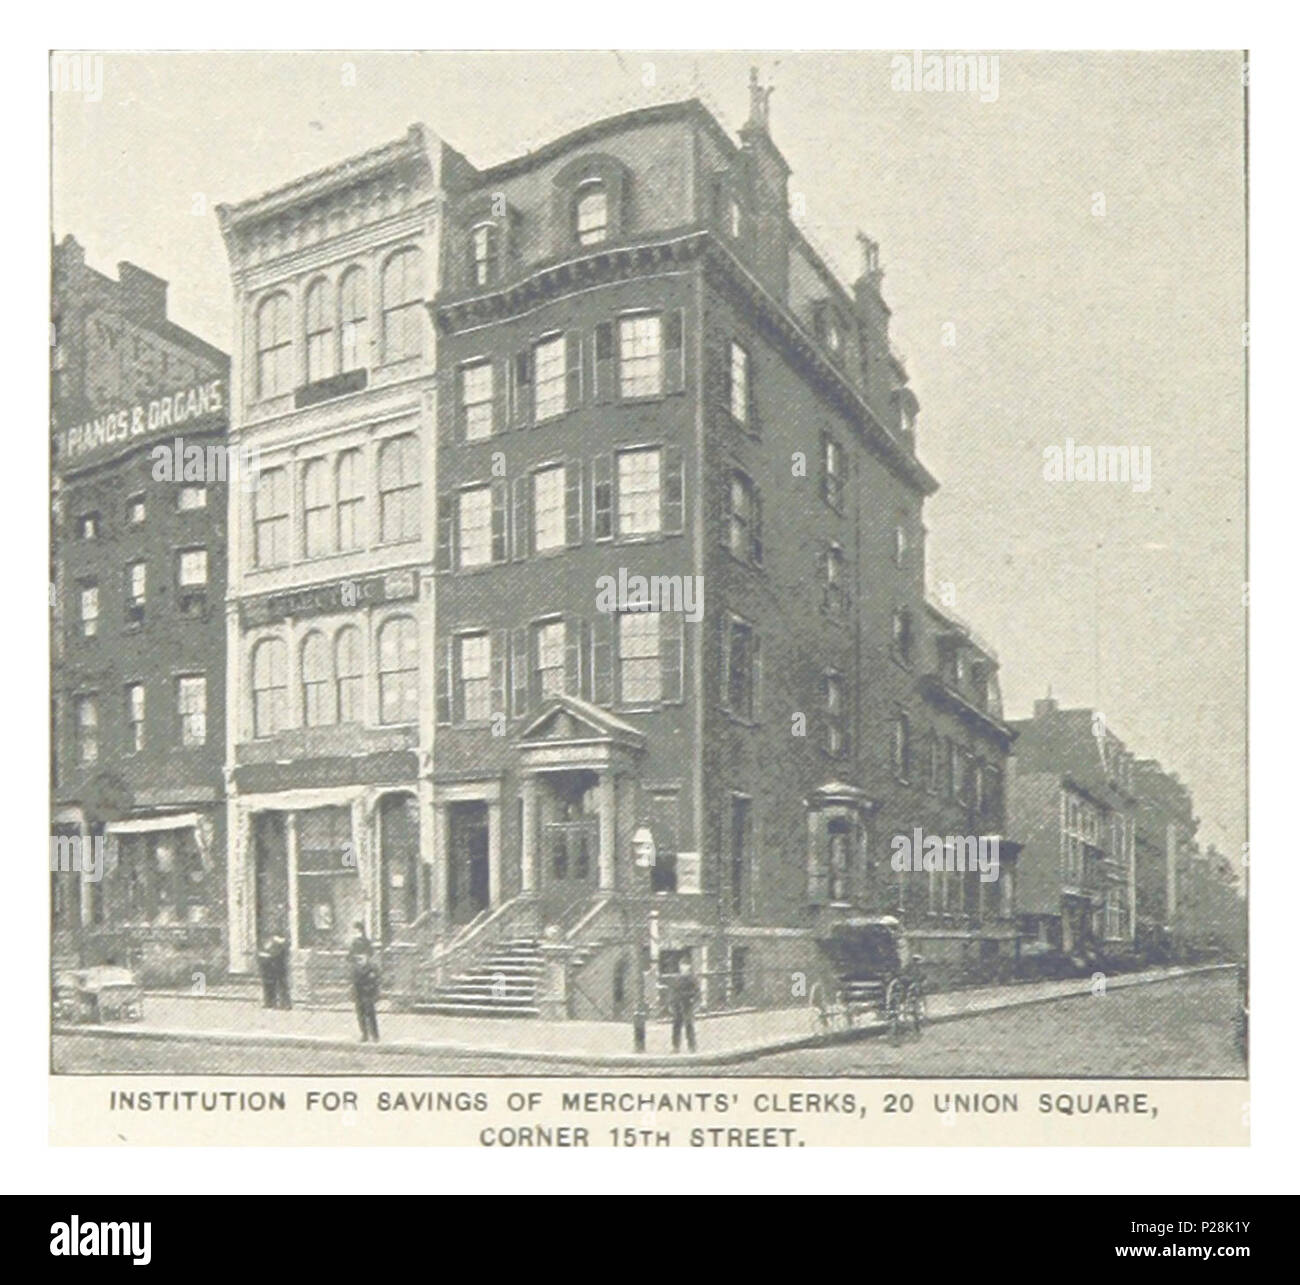 (King1893NYC) pg784 INSTITUTION FOR SAVINGS OF MERCHANTS' CLERKS, 20 UNION SQUARE CORNER 15TH STREET. - Stock Image